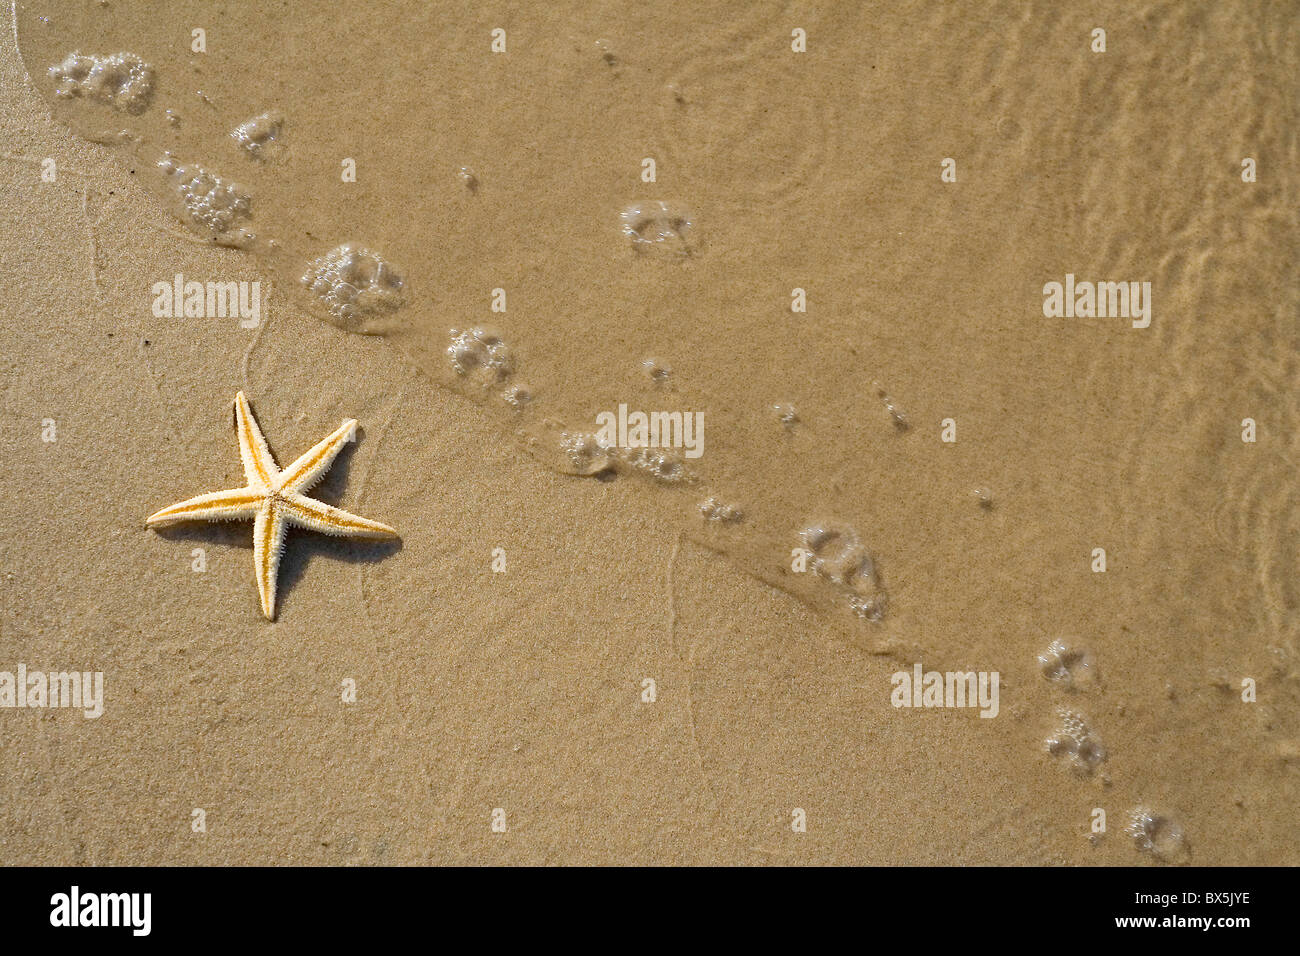 the starfish on the beach - Stock Image